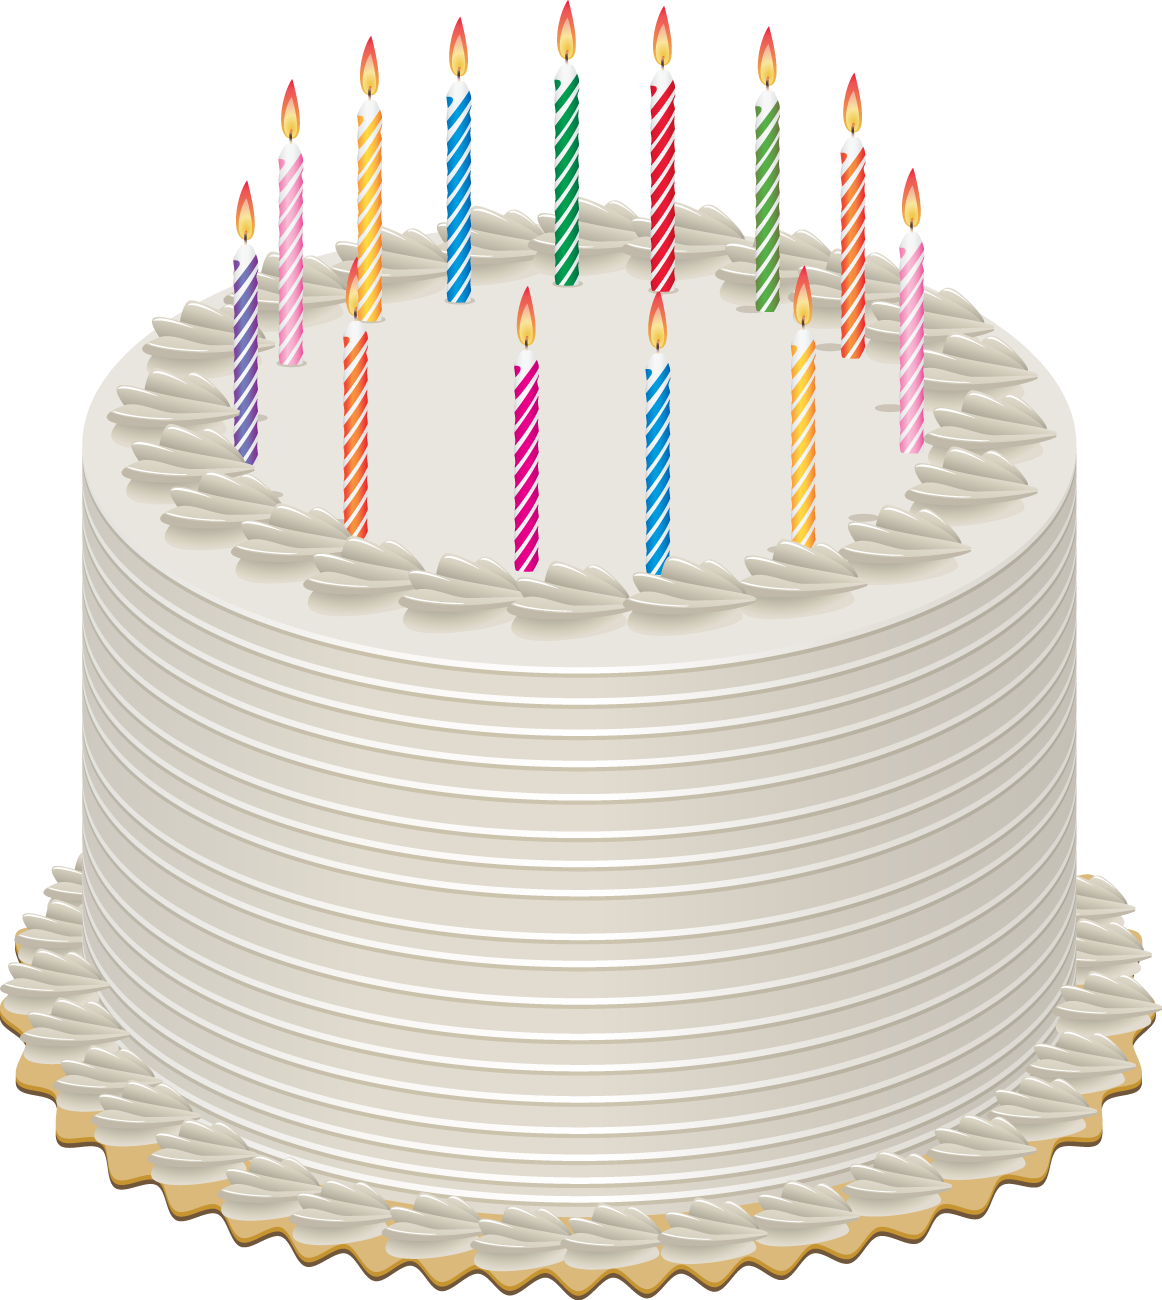 Clipartfest about free for. Christmas birthday cake transparent clipart